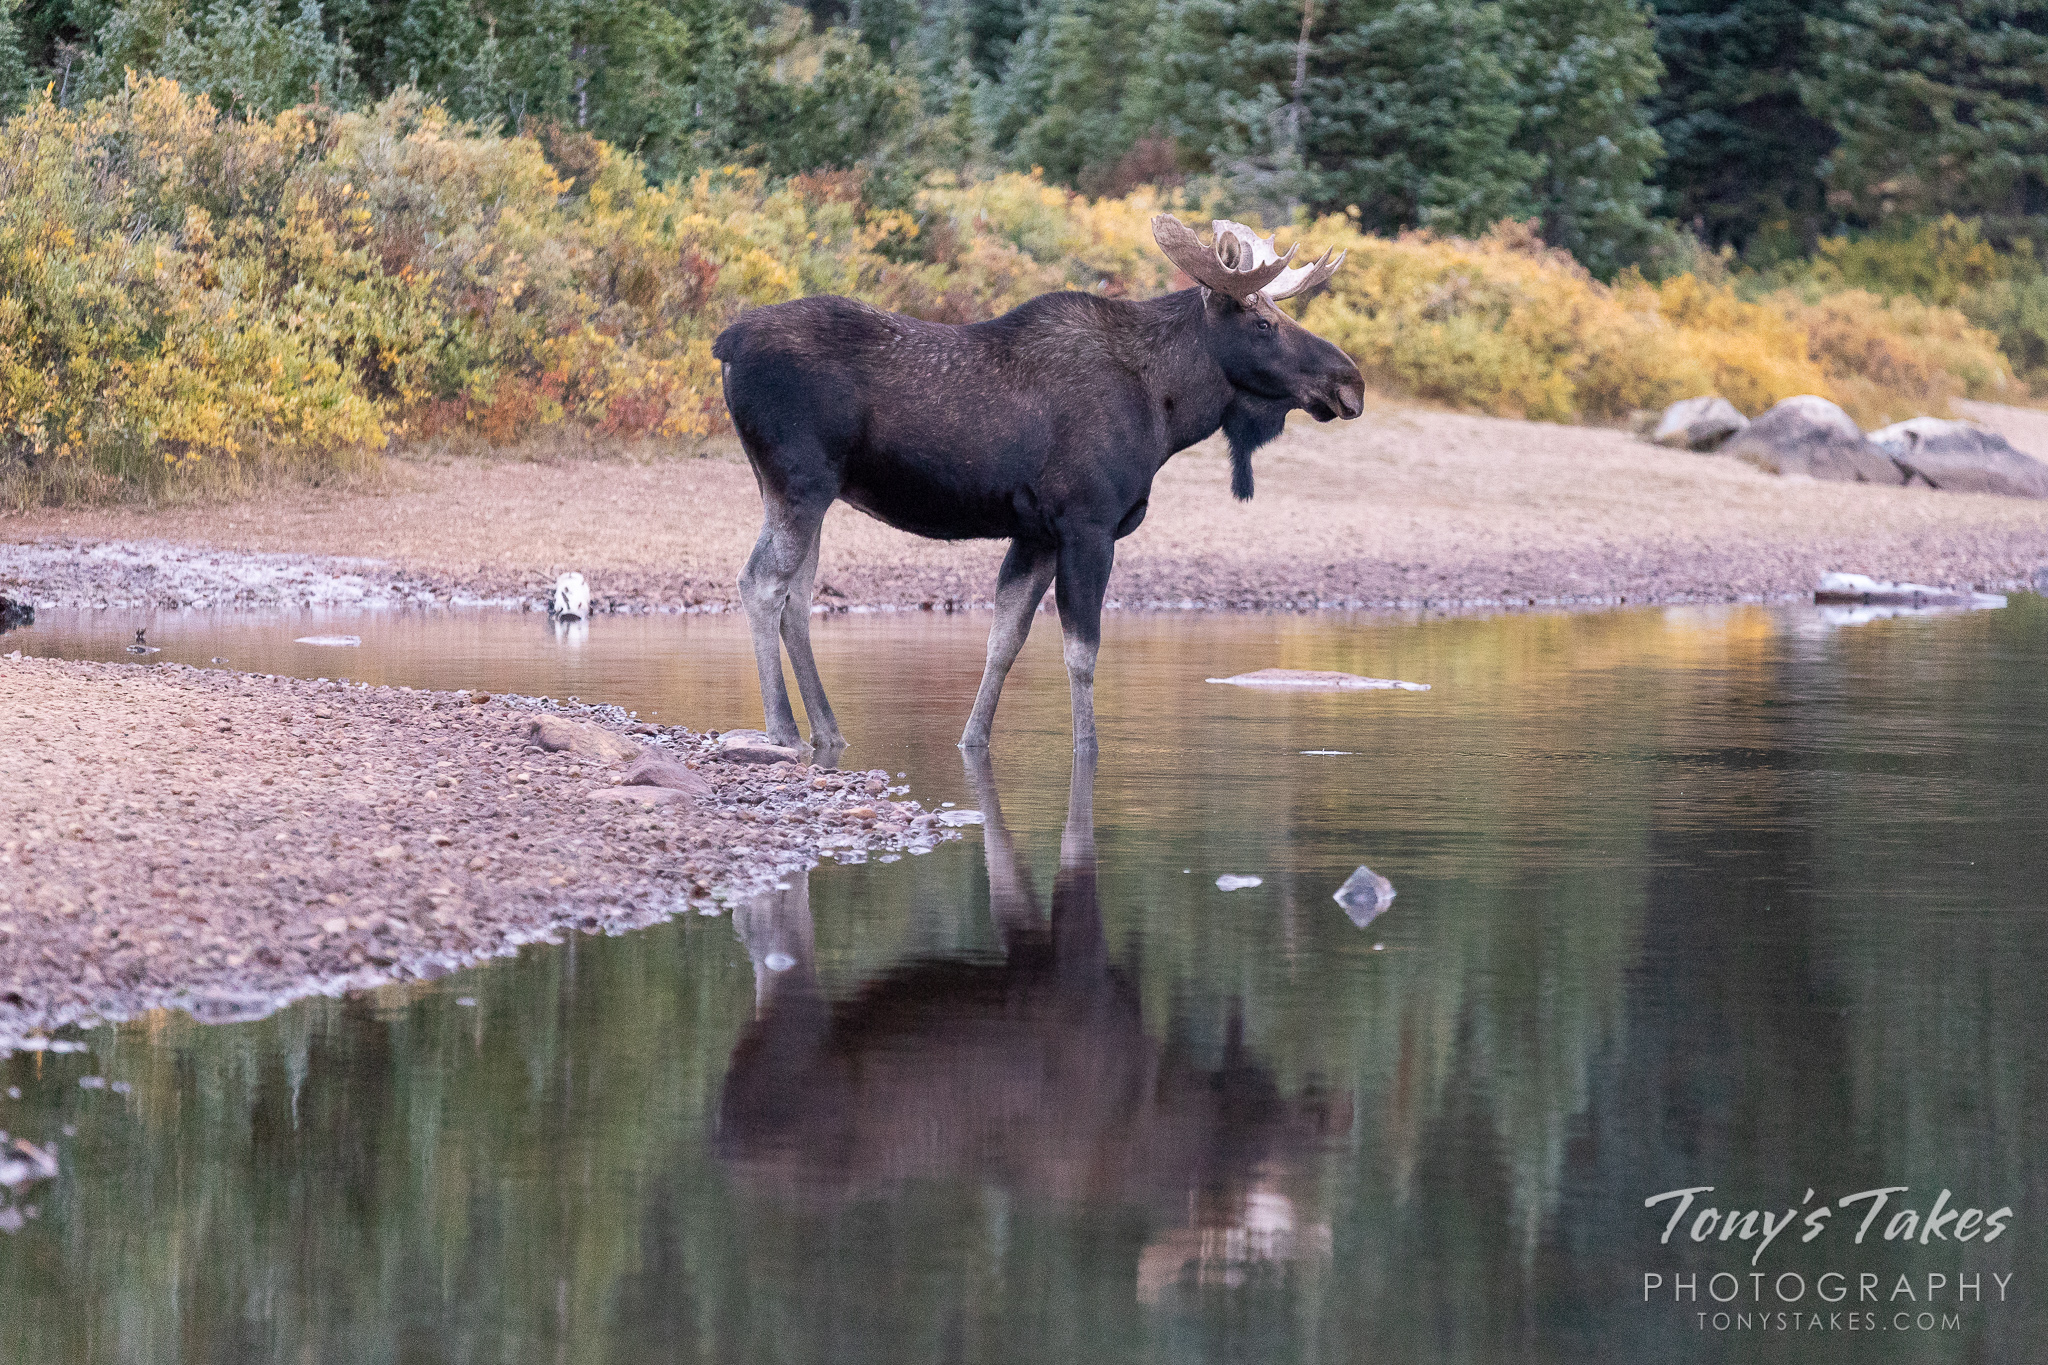 A moose bull stands on the shore o a lake in Colorado's high country. (© Tony's Takes)